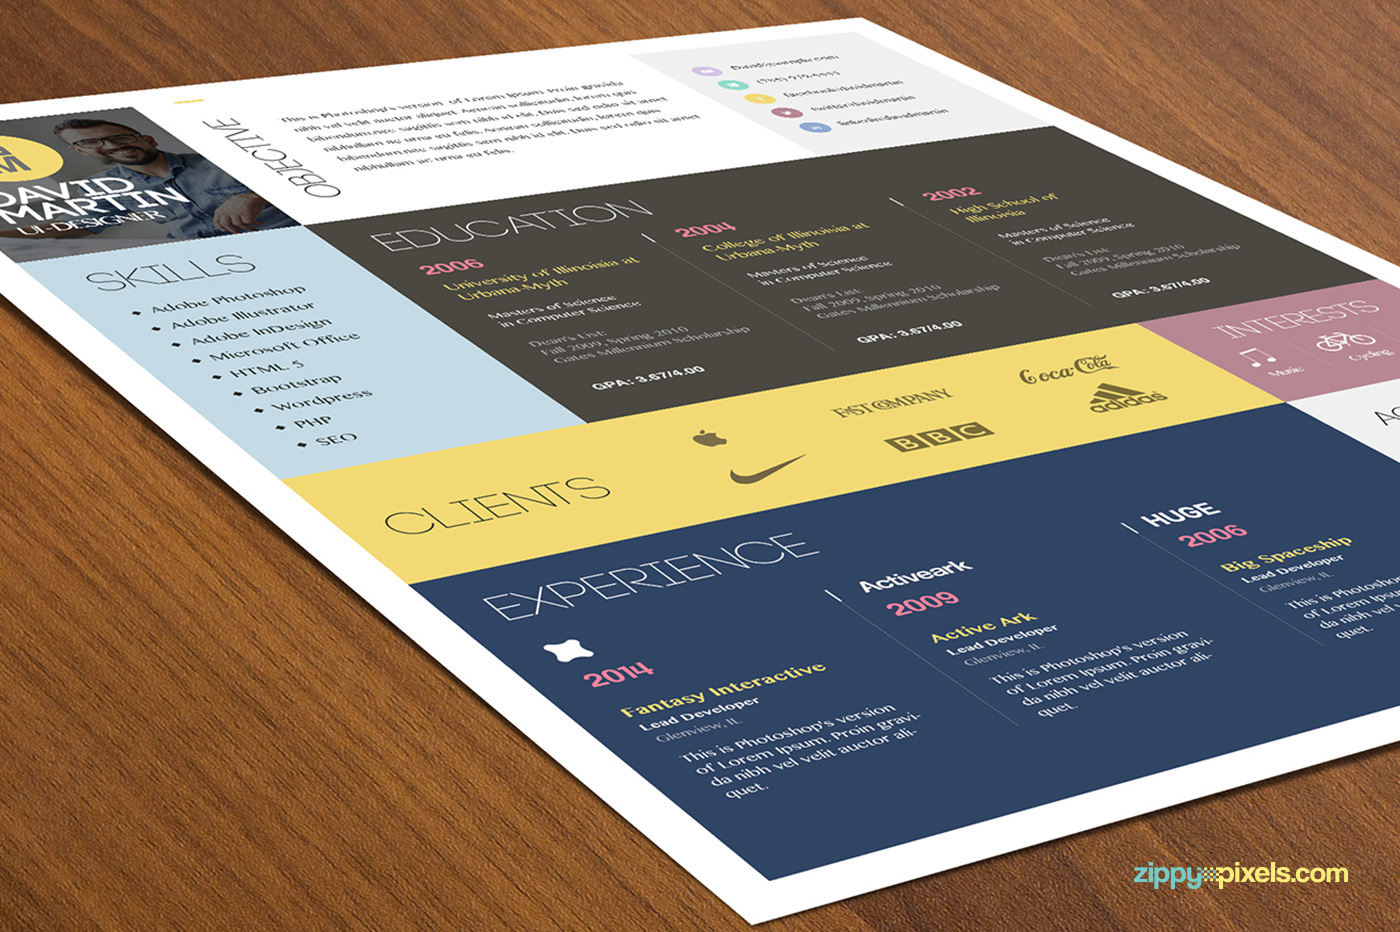 Simple and Colorful Resume & Cover Letter Template on Behance